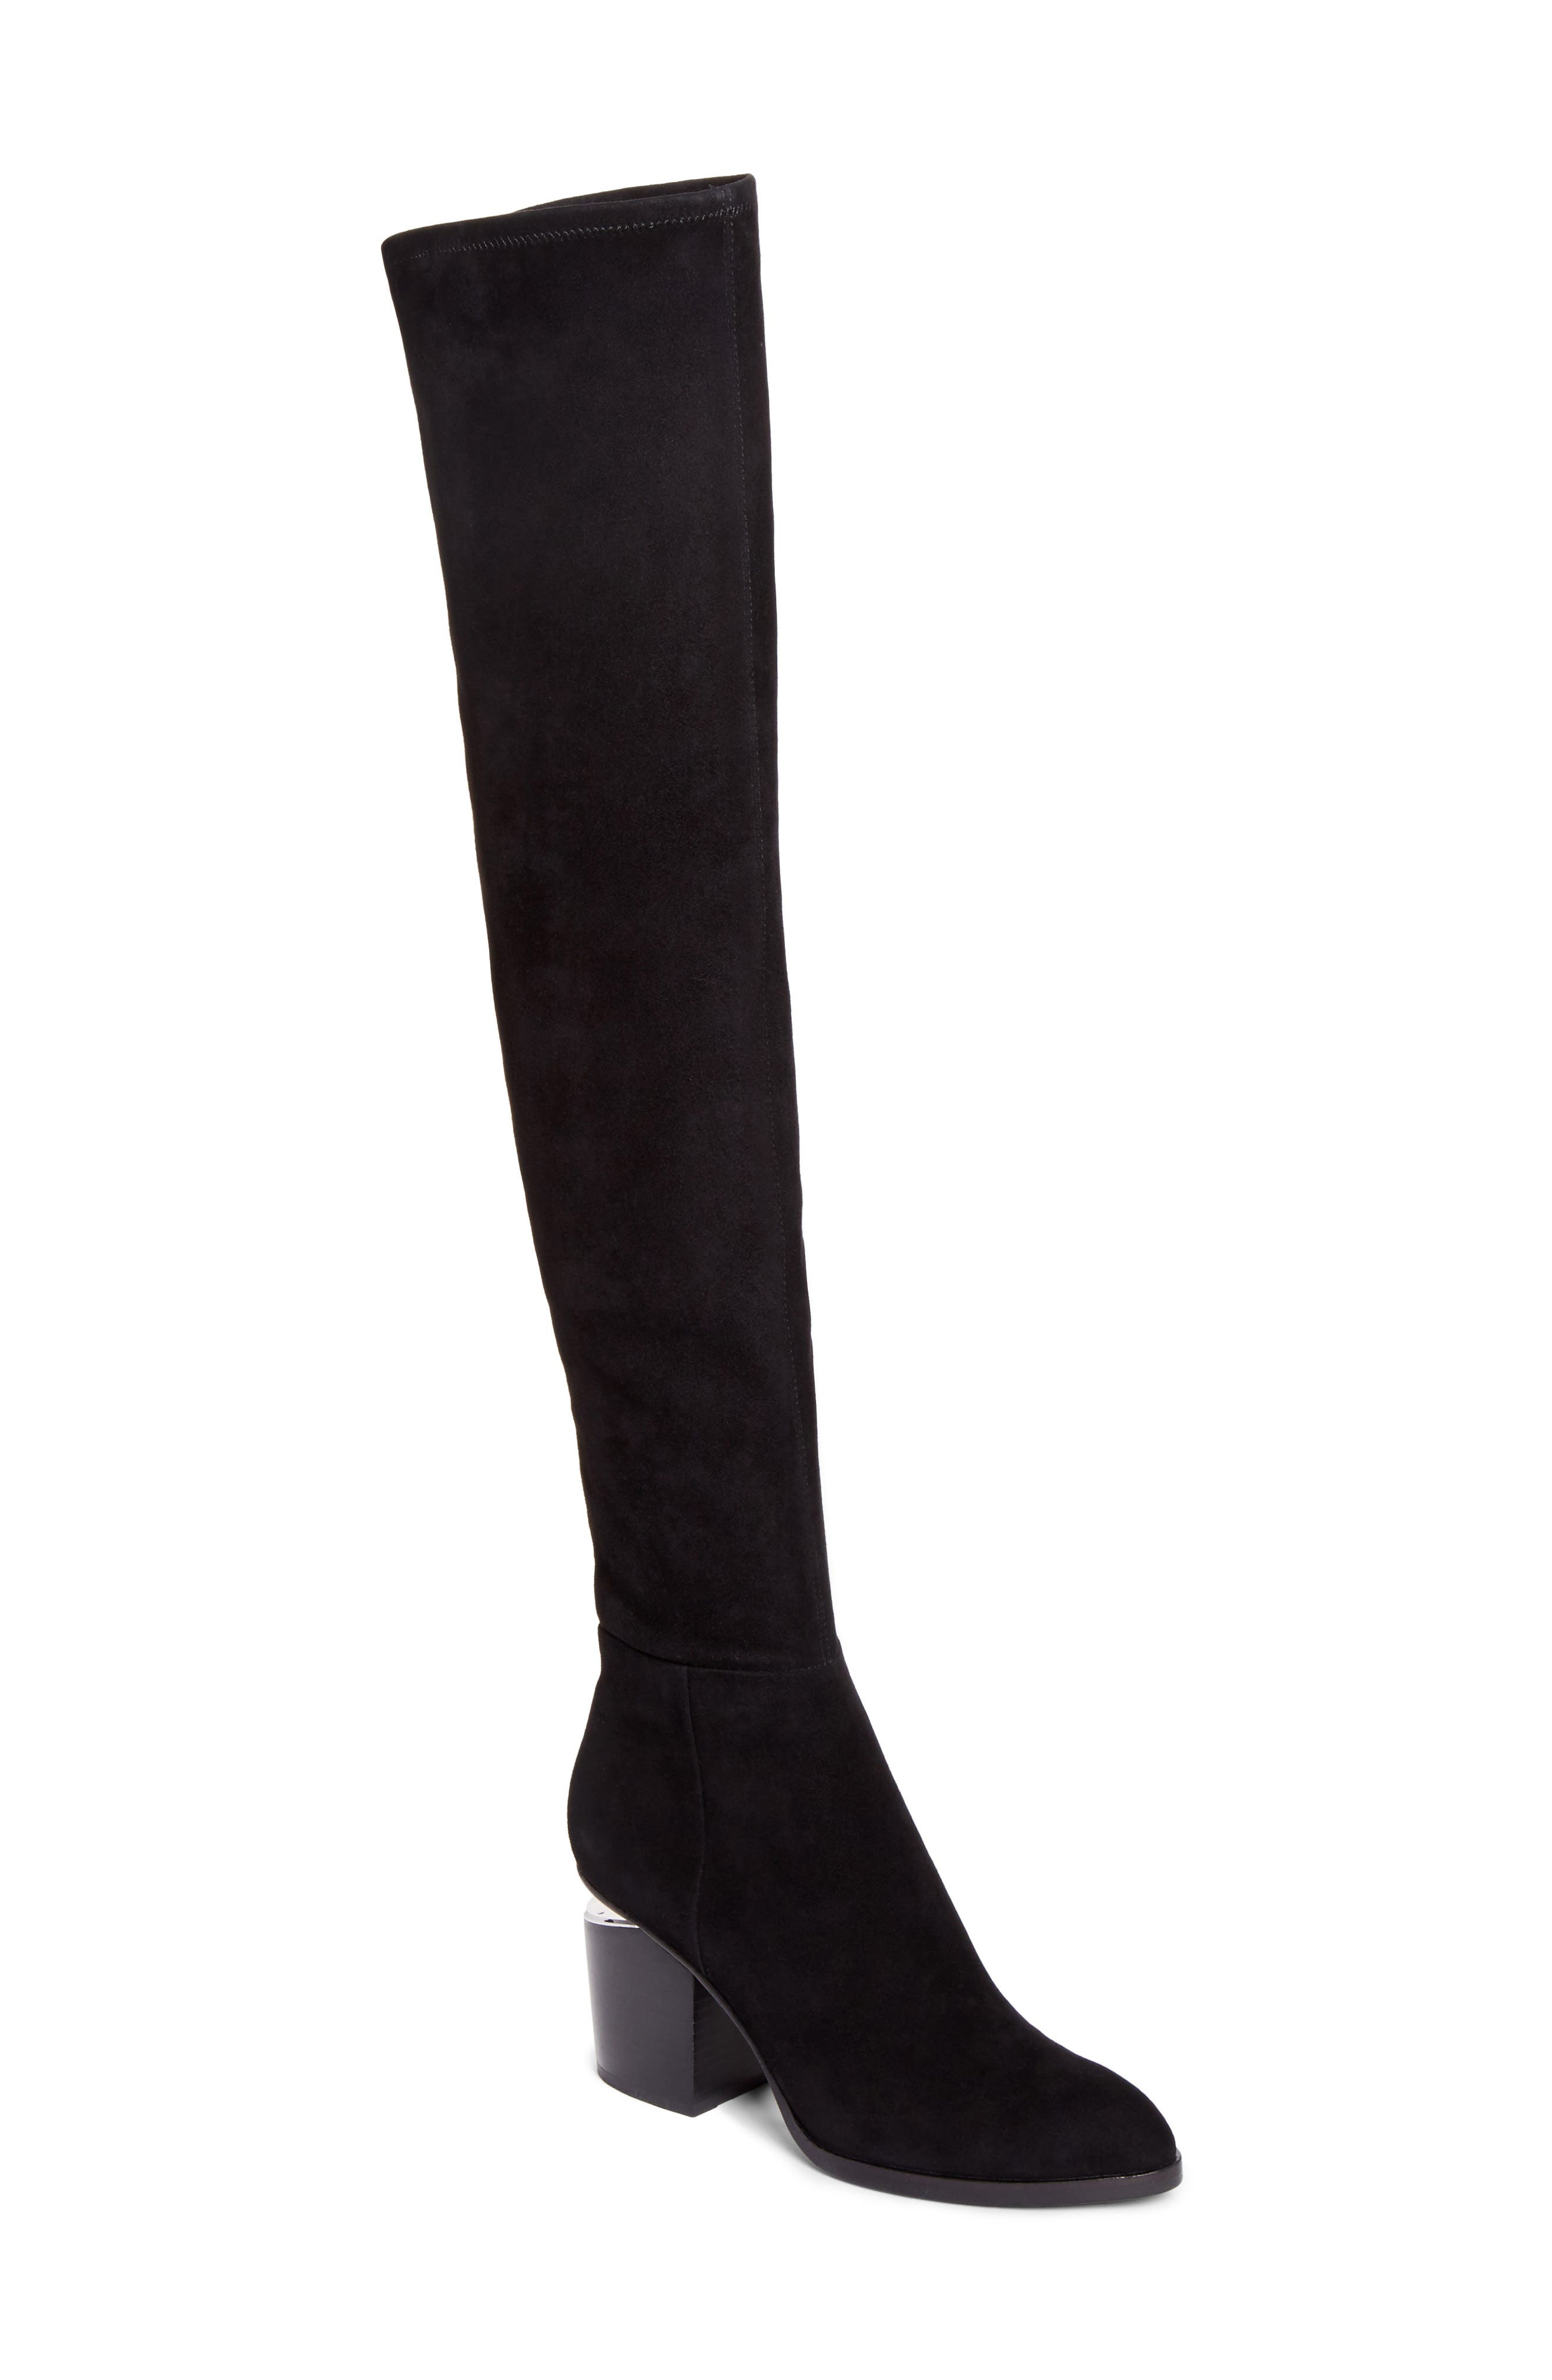 Gabi Over the Knee Boot,                             Main thumbnail 1, color,                             Black Suede